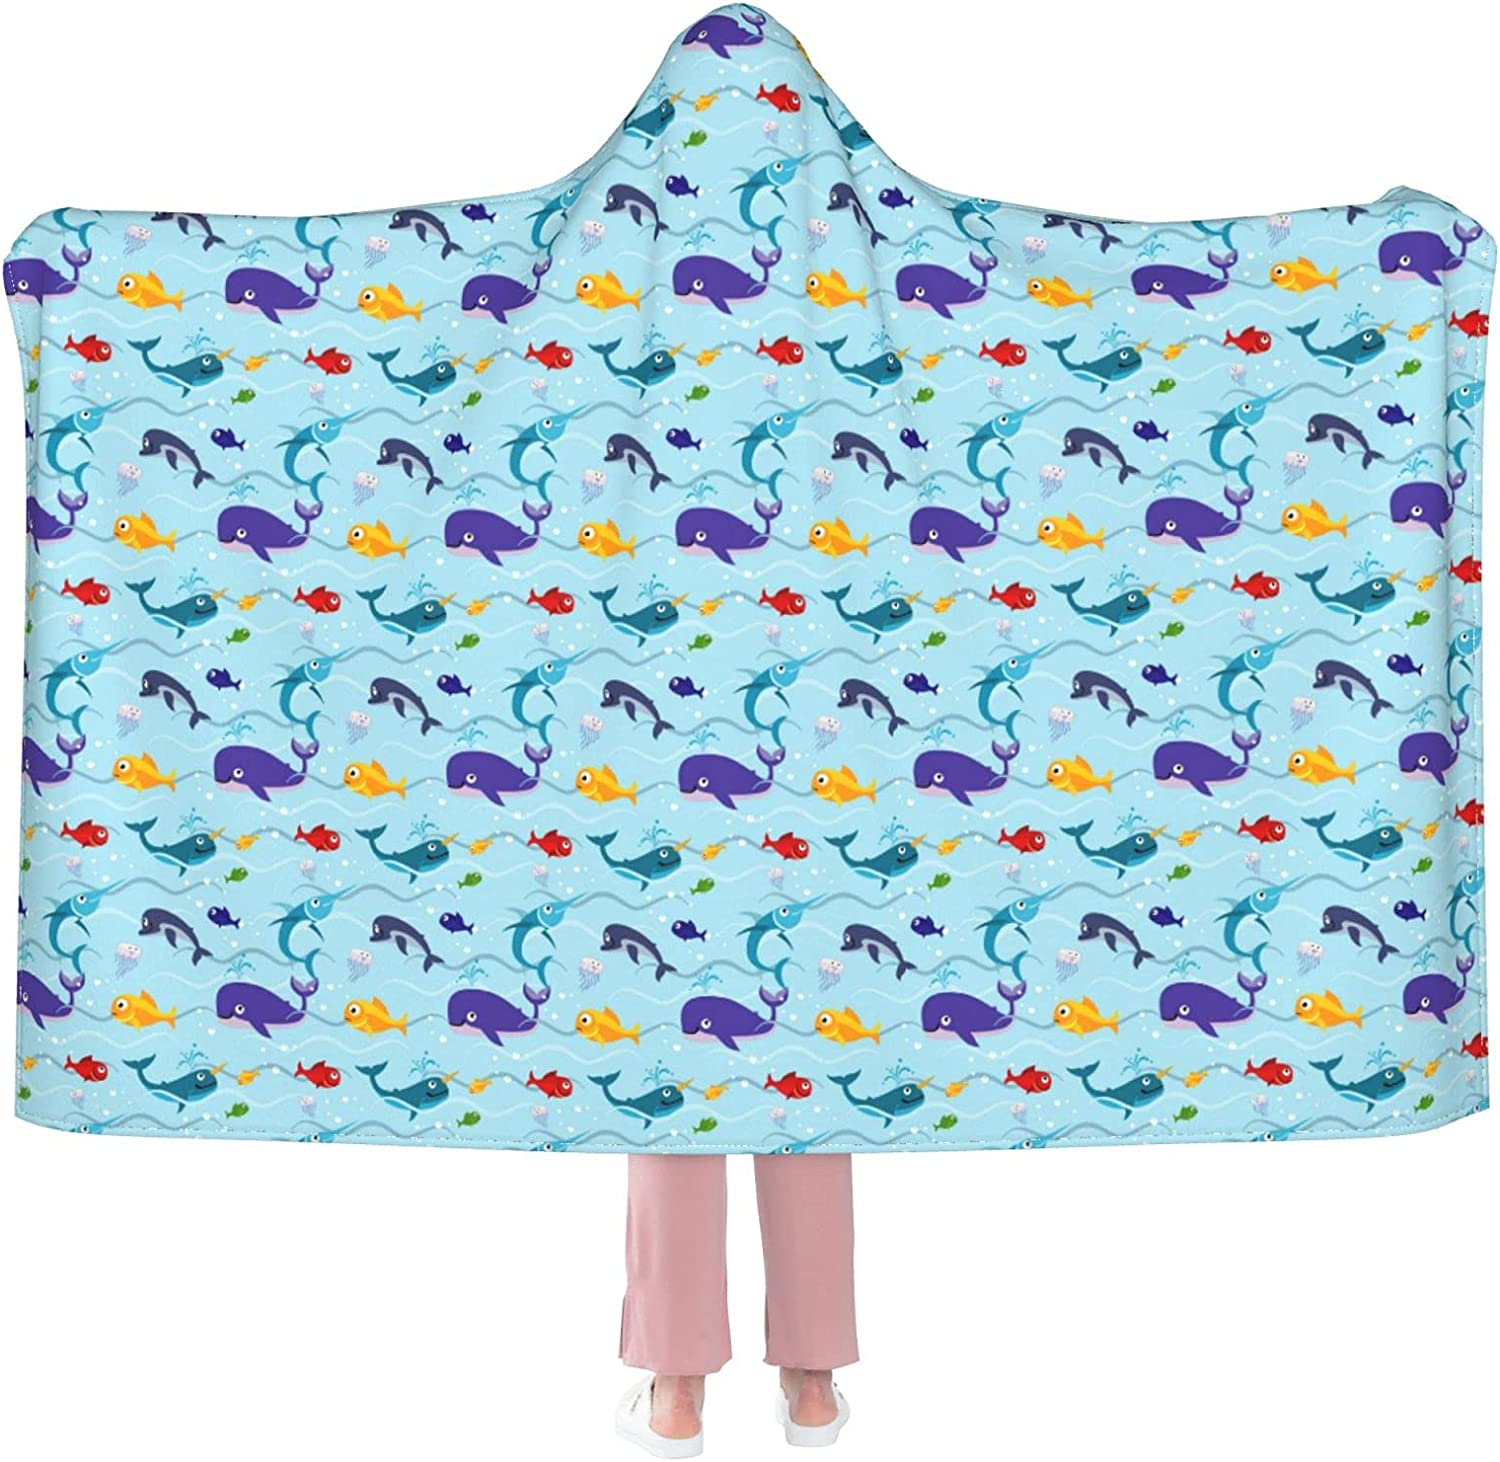 Flannel Wearable Blanket Regular discount Funny Spring new work one after another Kids Fish Ultr Water Wrap Robe in